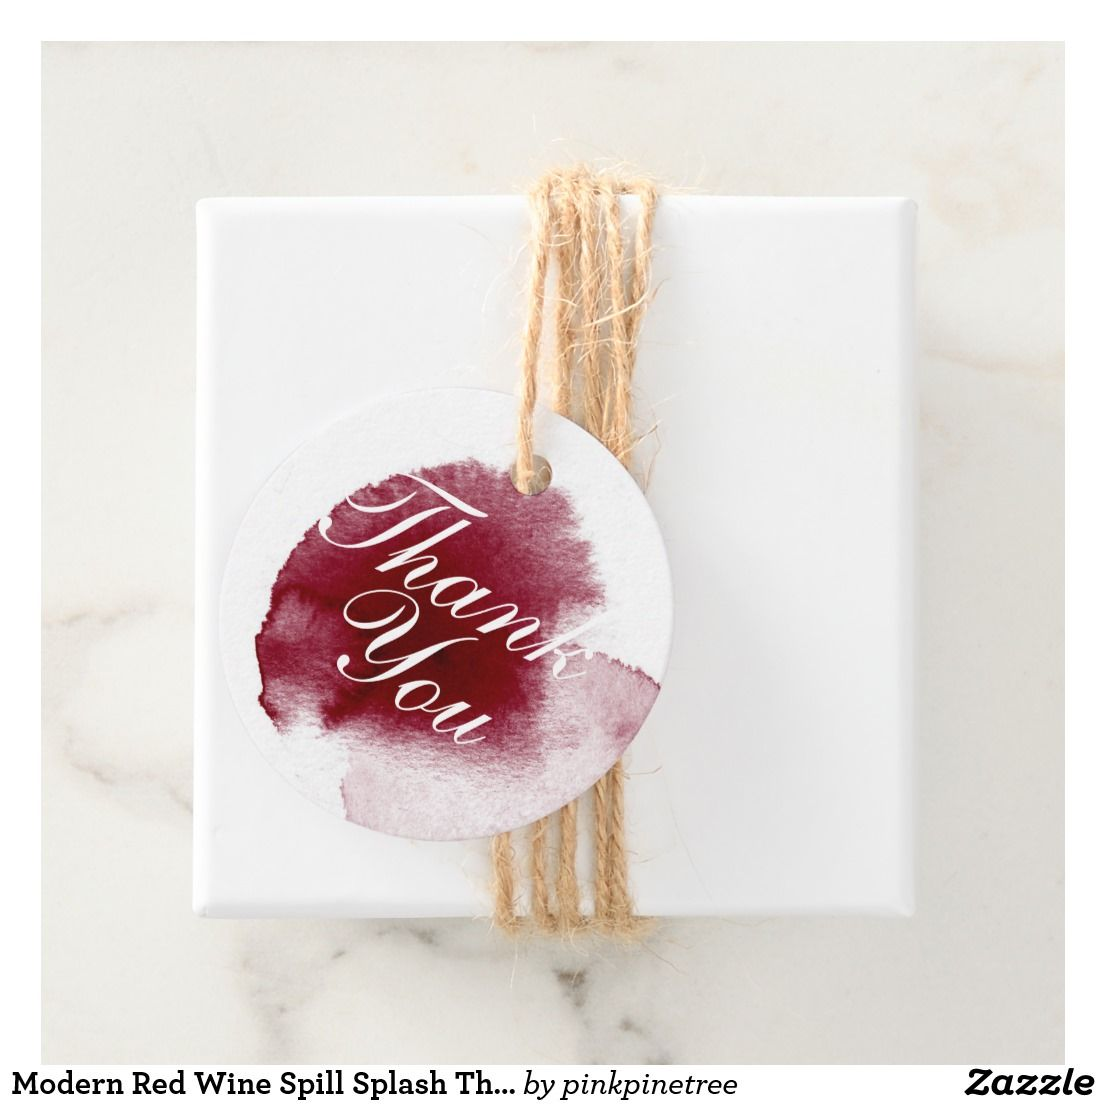 Dress up your gifts with these modern red wine spill splash thank you favor tags - perfect for vineyard wedding favors!